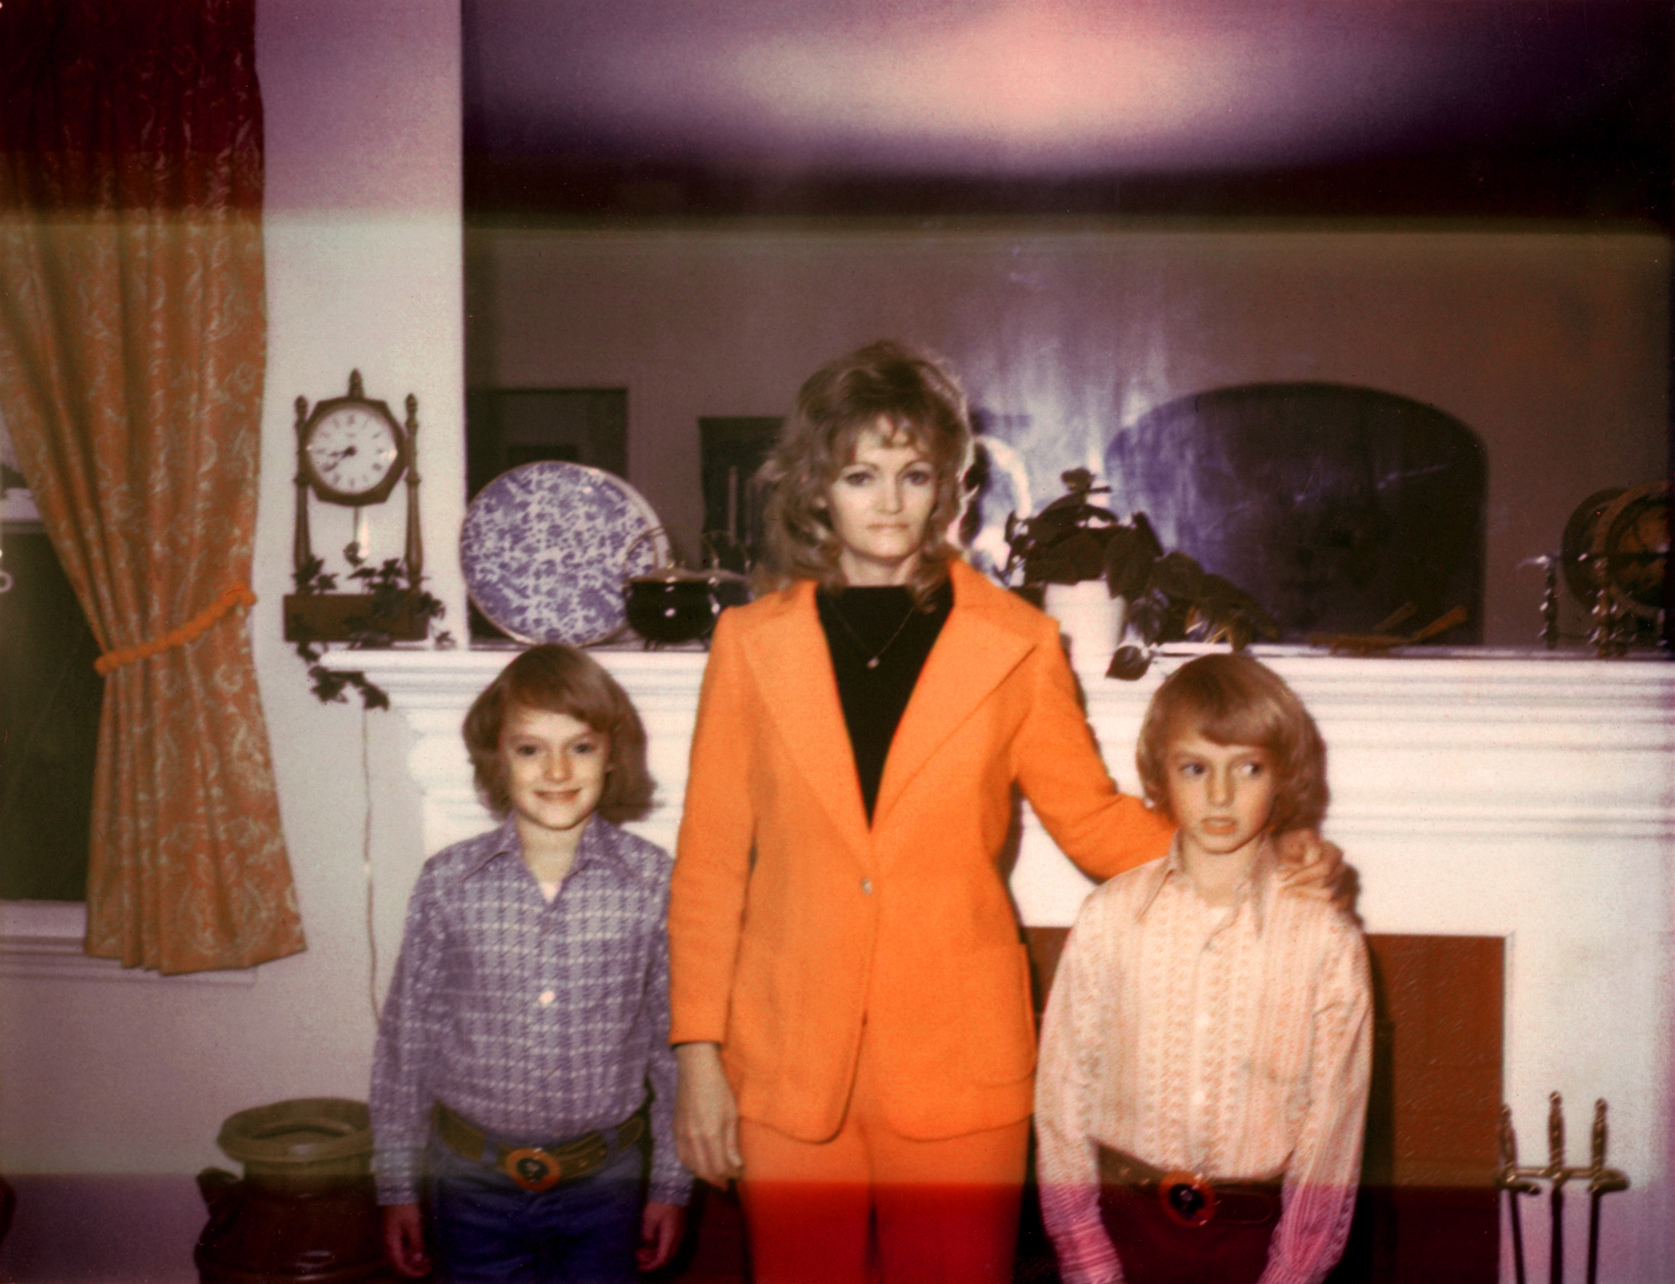 At age 10, Scott, left, and Mark with their mother Patricia Kelly in 1974.